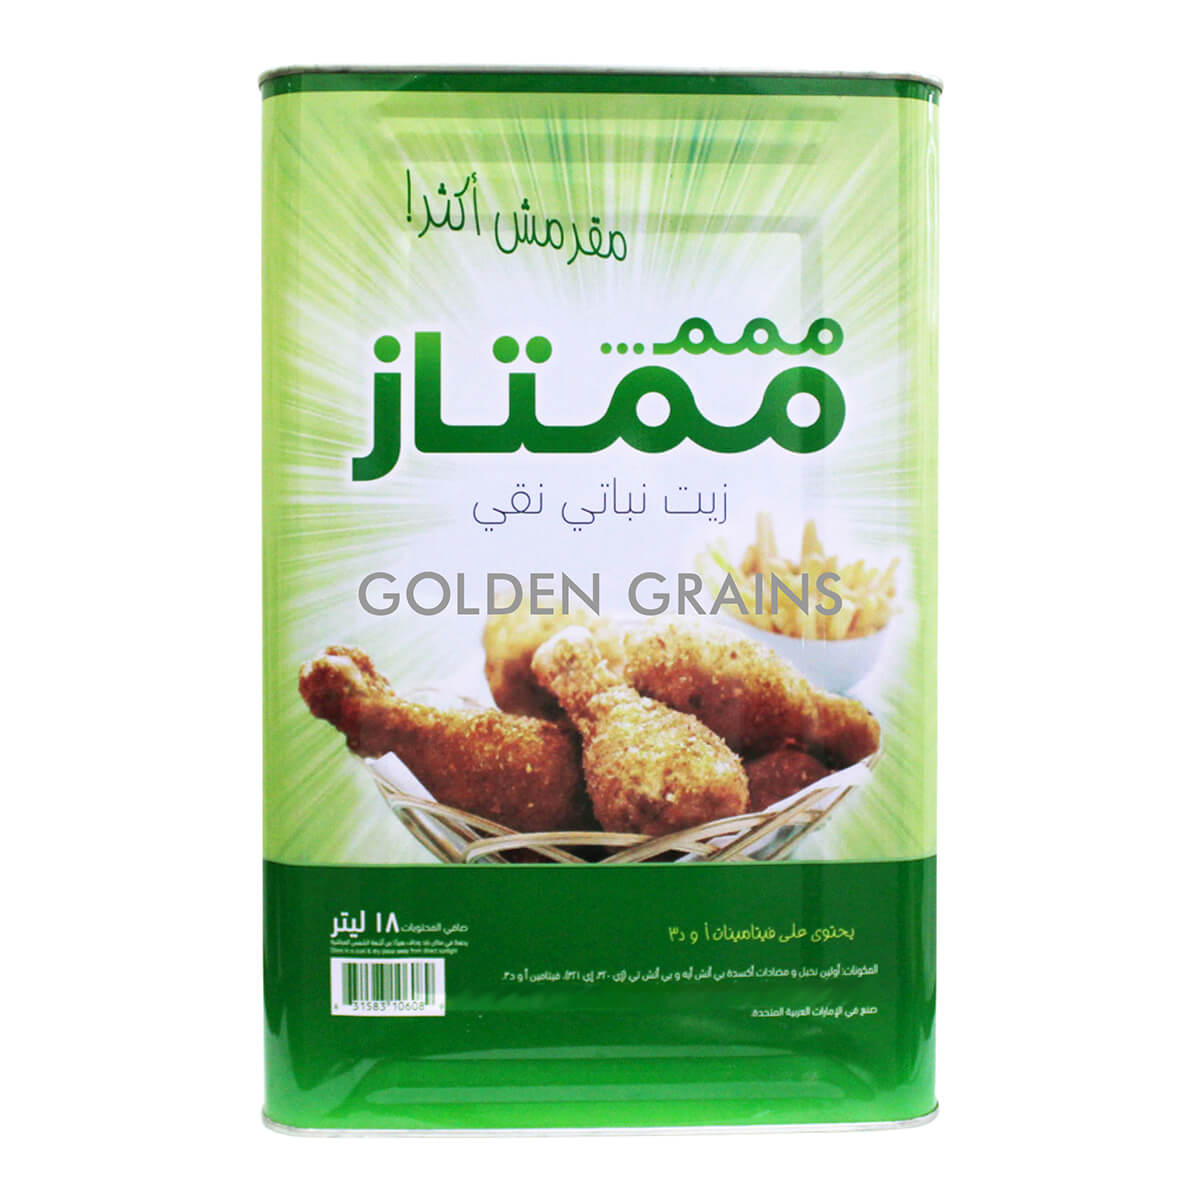 Golden Grains - Mumtaz - Vegetable Oil - Back.jpg